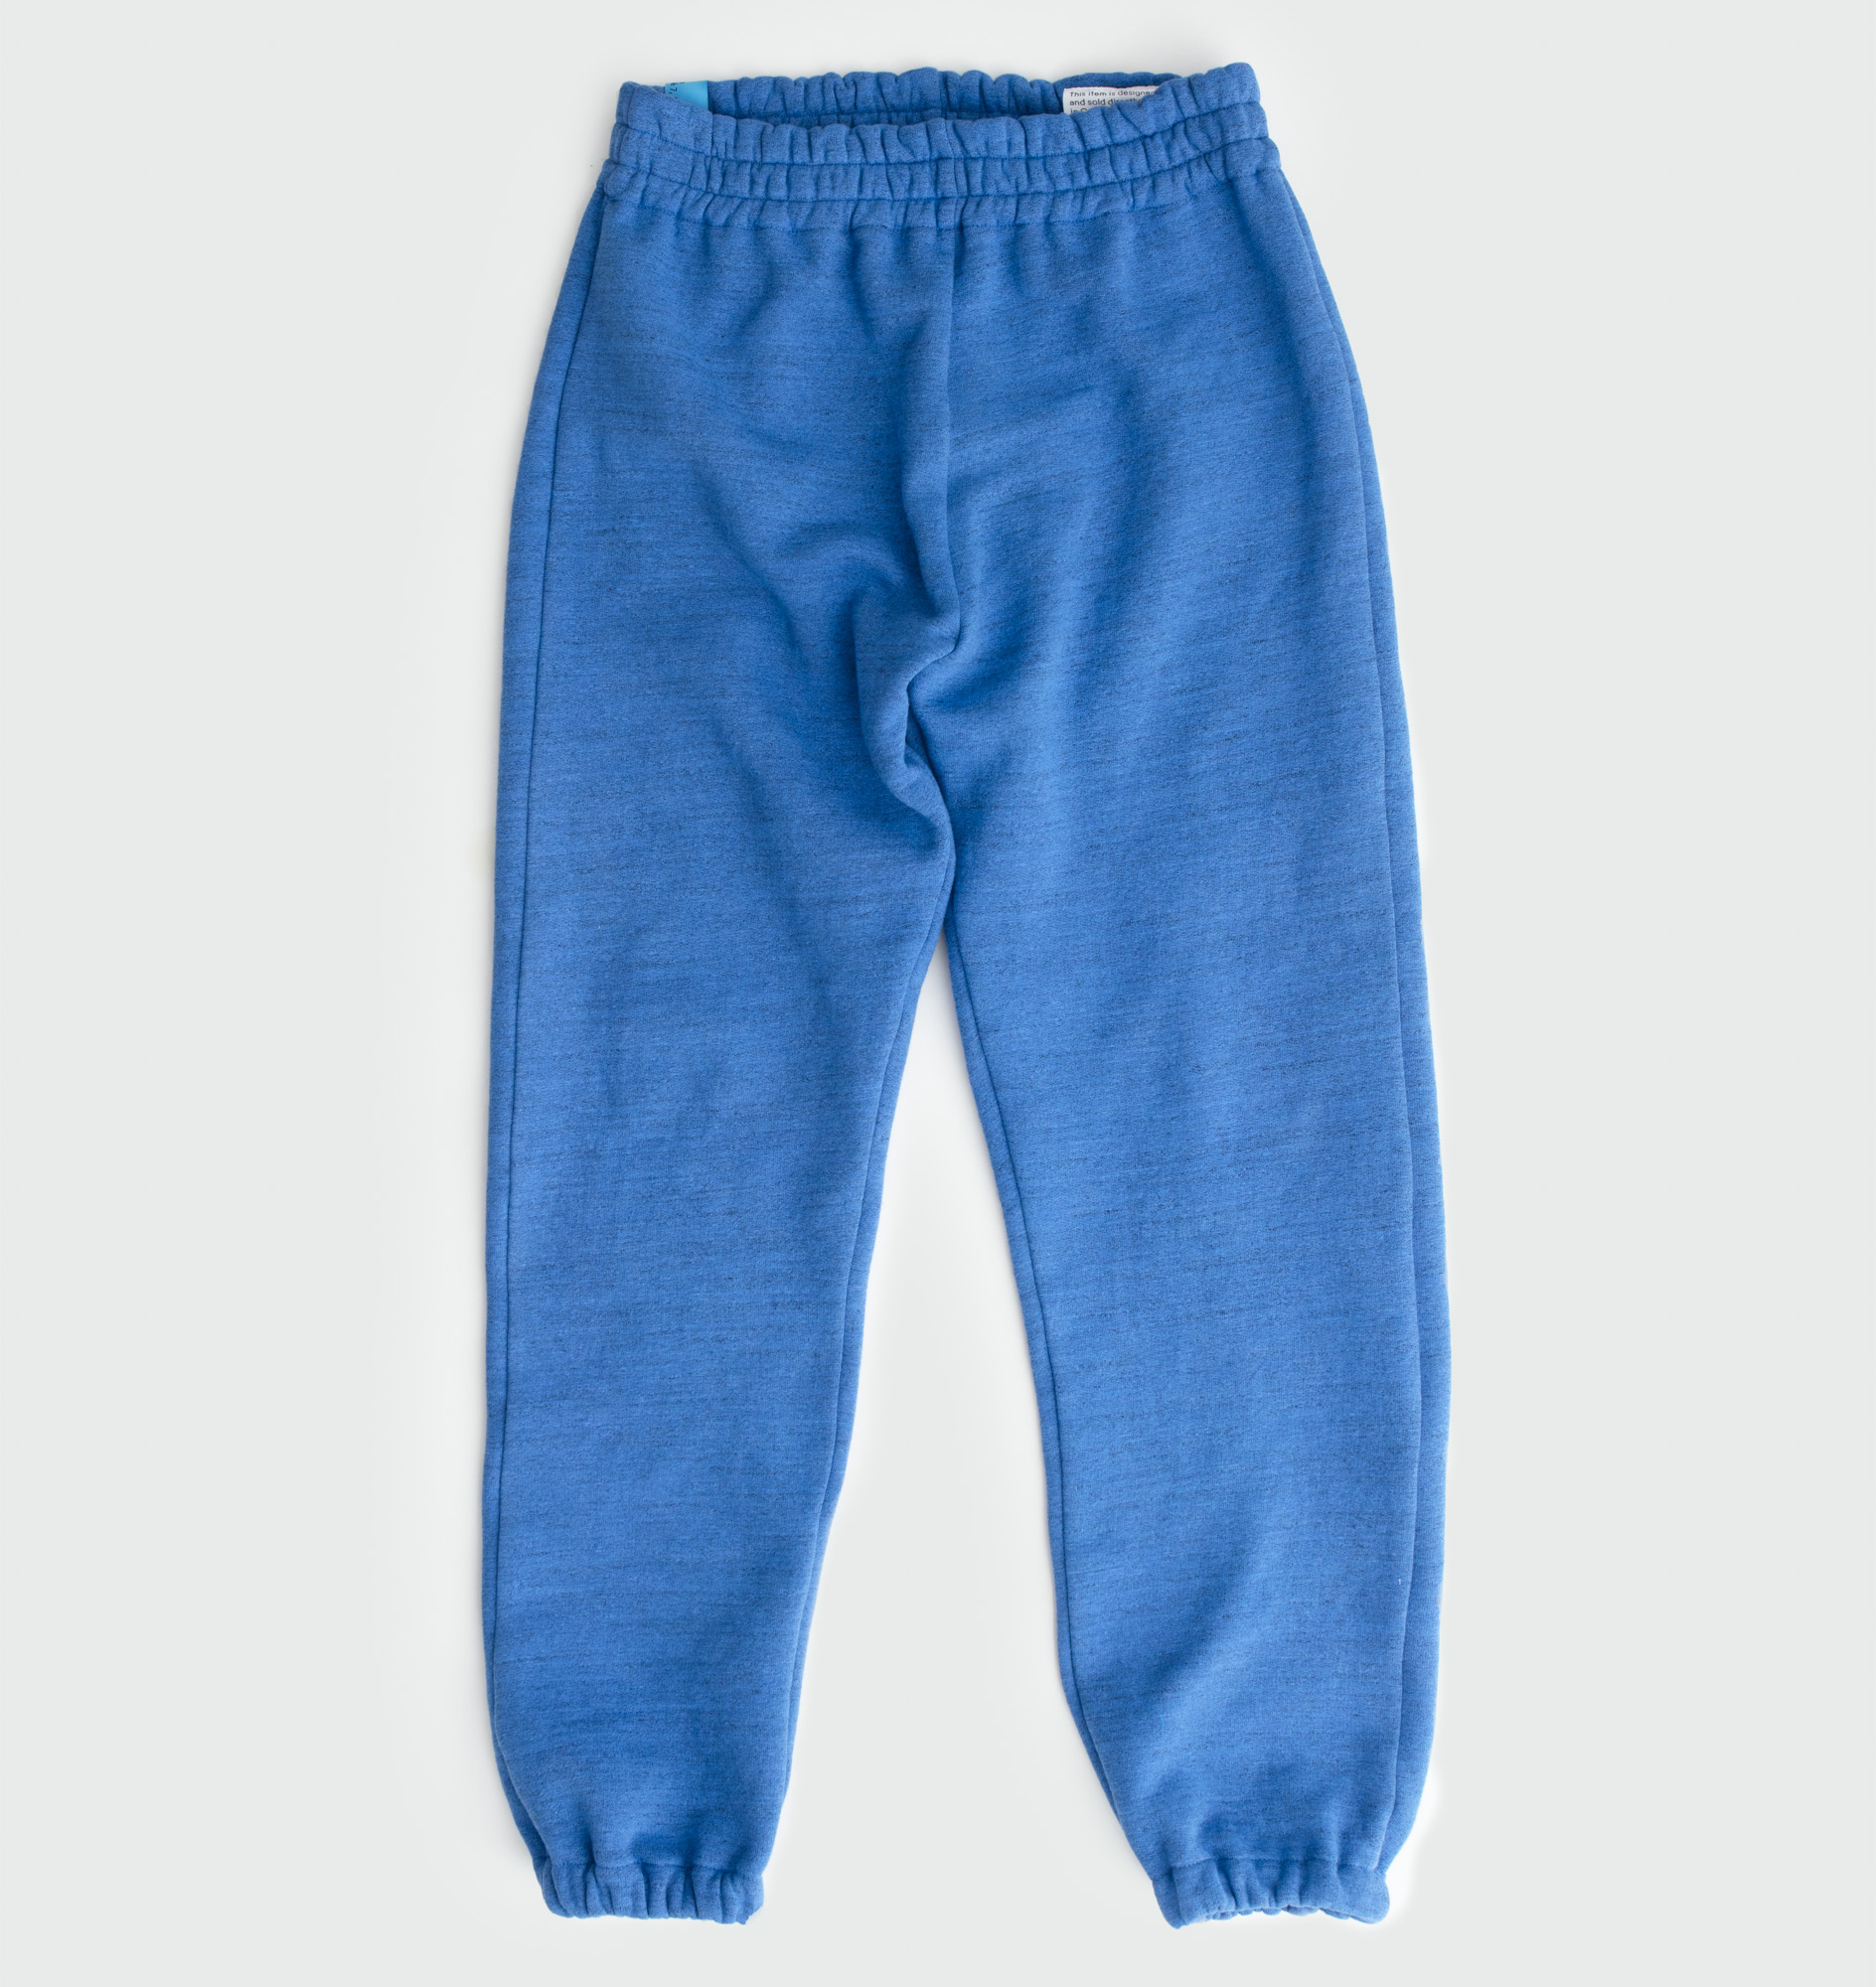 Sweatpants or jogging pants by Artikel København, produced in Copenhagen